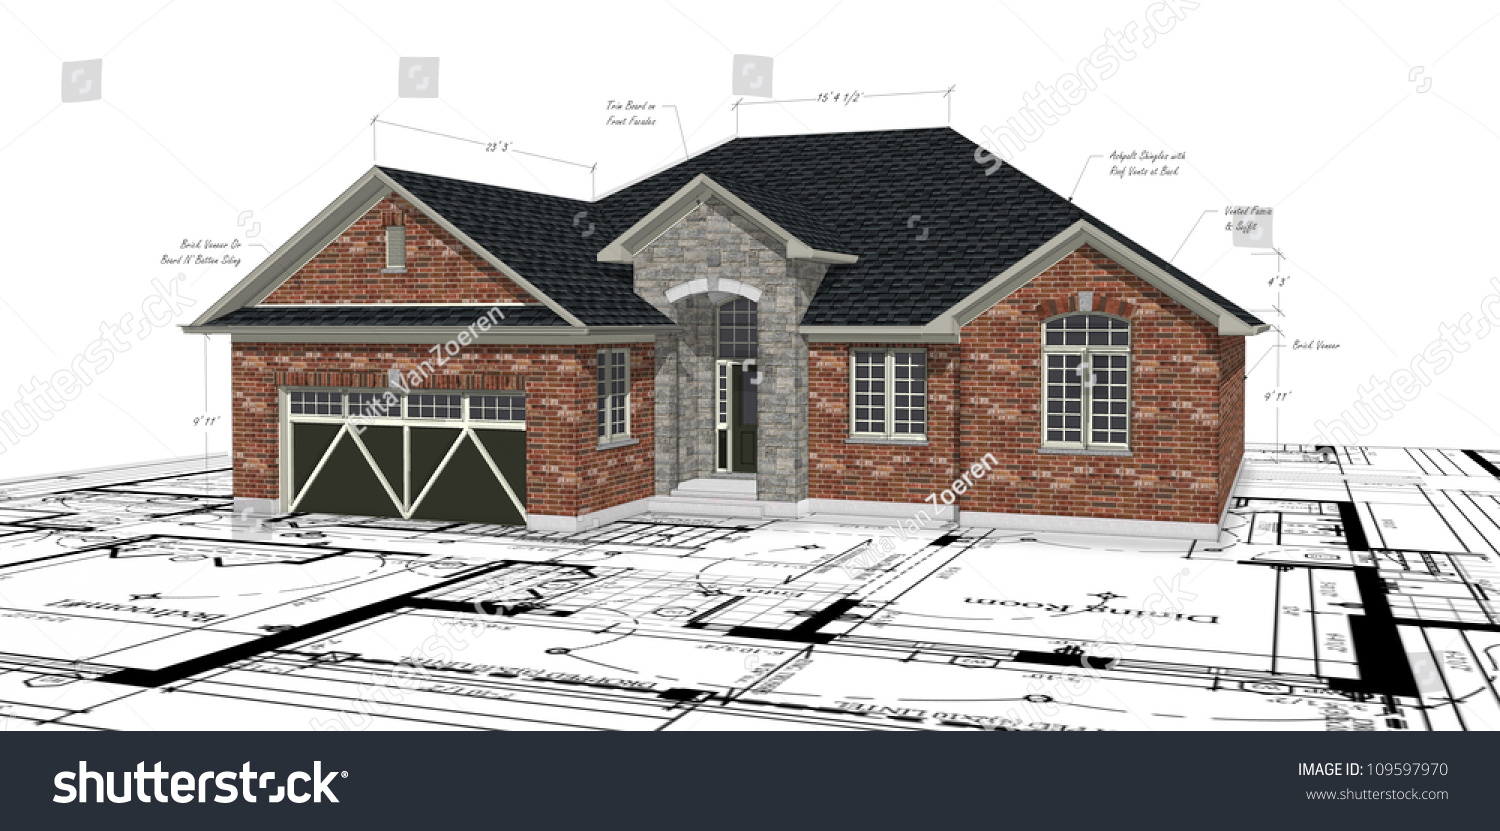 Brick house plans traditional brick ranch hwbdo63914 new american from house plans brick house - Brick house plans ...